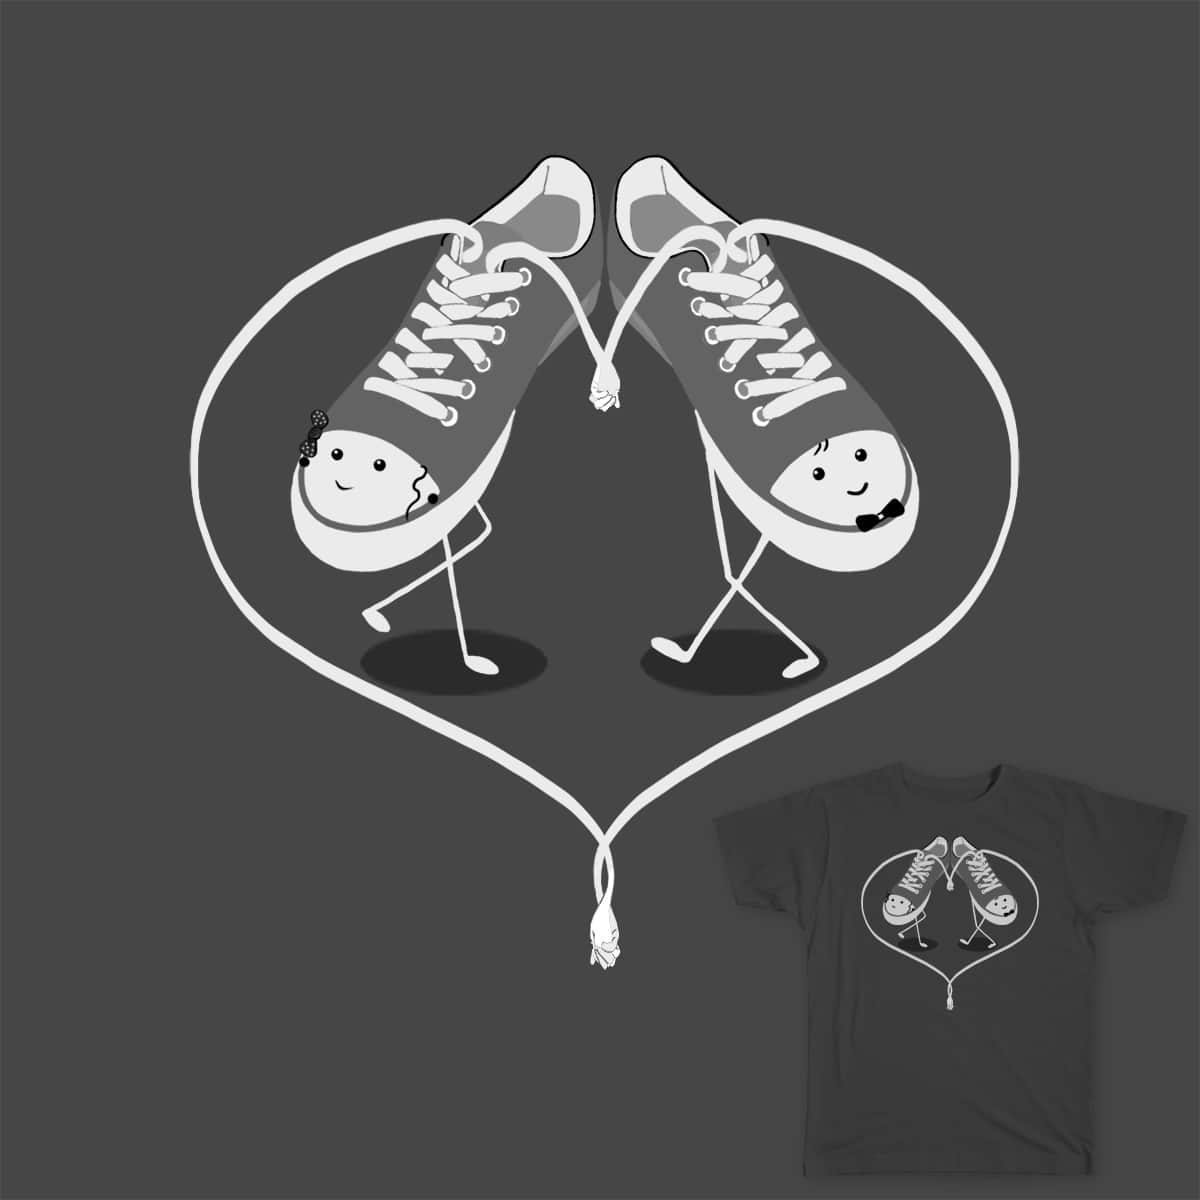 Sole-mates by GunjanCreations and soloyo on Threadless